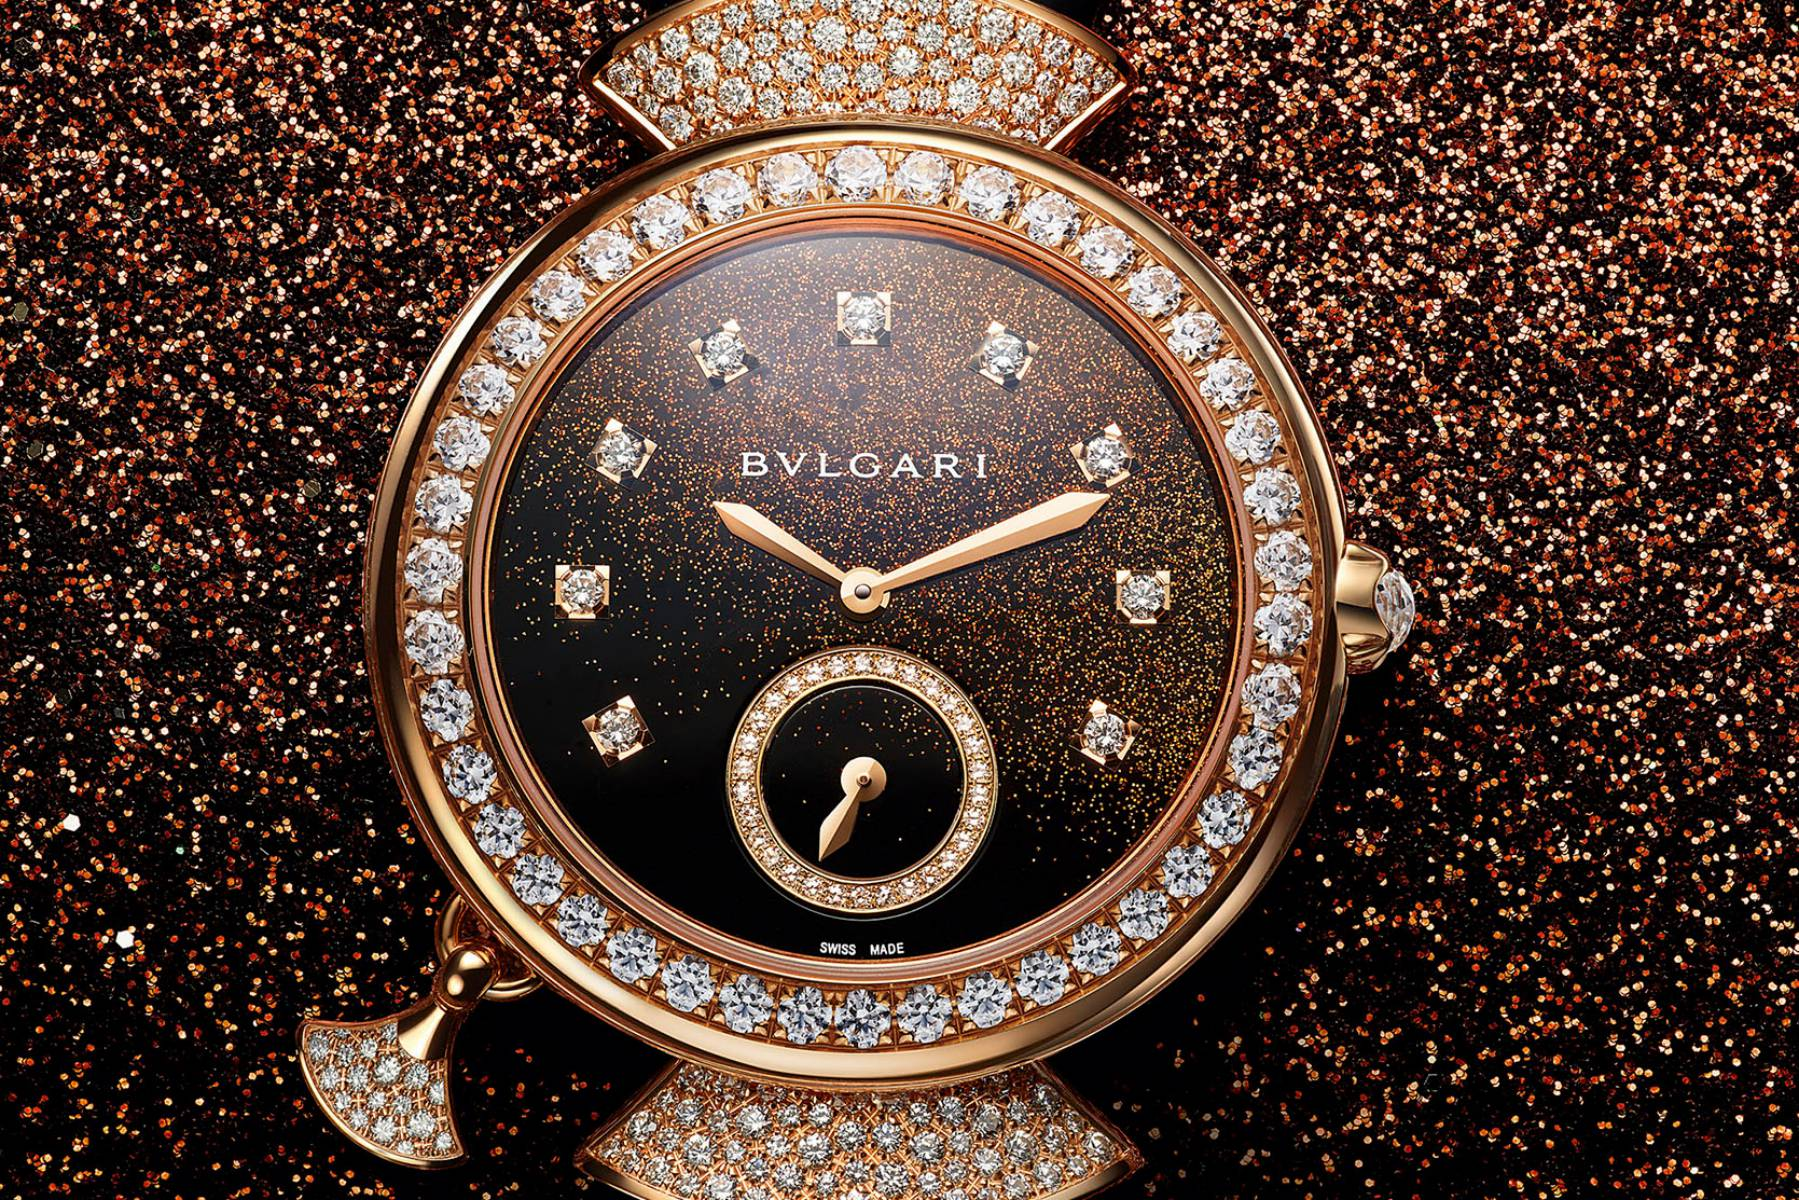 Baselworld 2018: Bulgari Unveils New Plans For The Brand's Icons